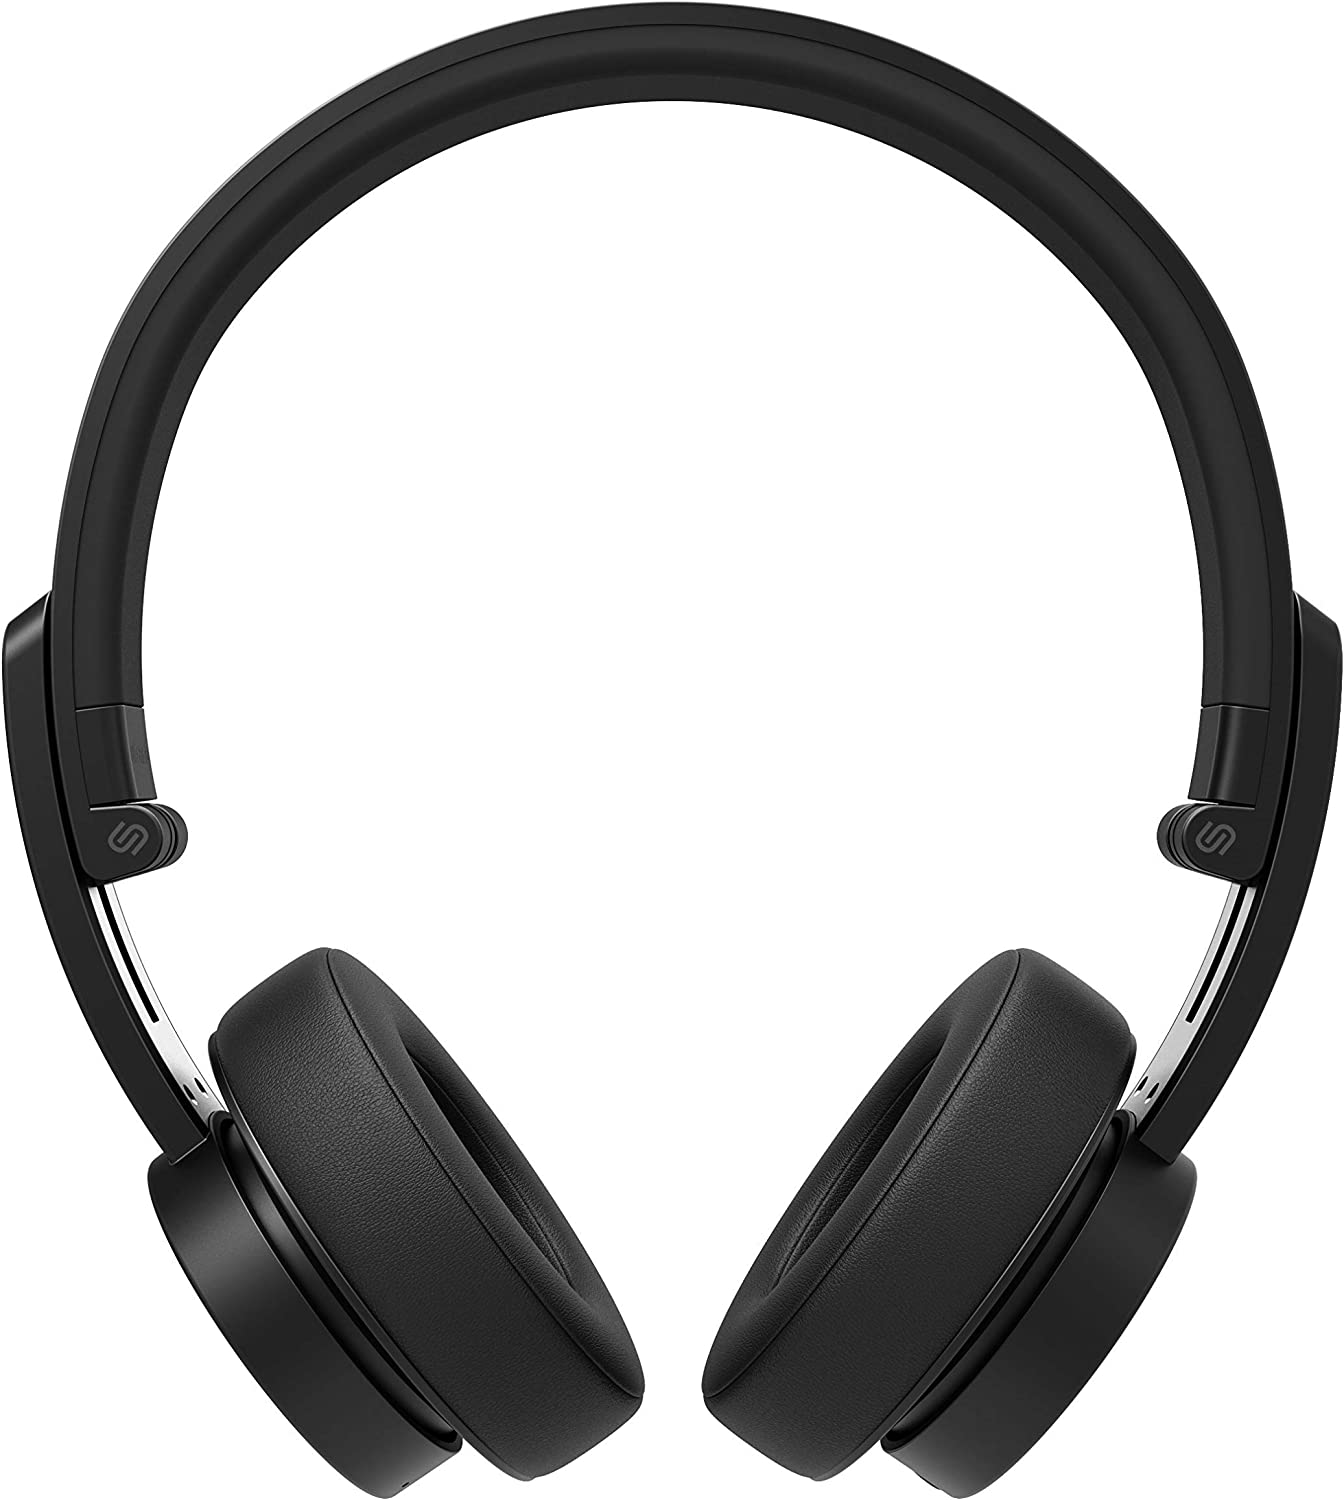 Urbanista Detroit Bluetooth On Ear Headphones [ Fashion Conscious ], Up to 12 Hours Play Time, Call-Handling with Microphone - Dark Clown (Renewed)